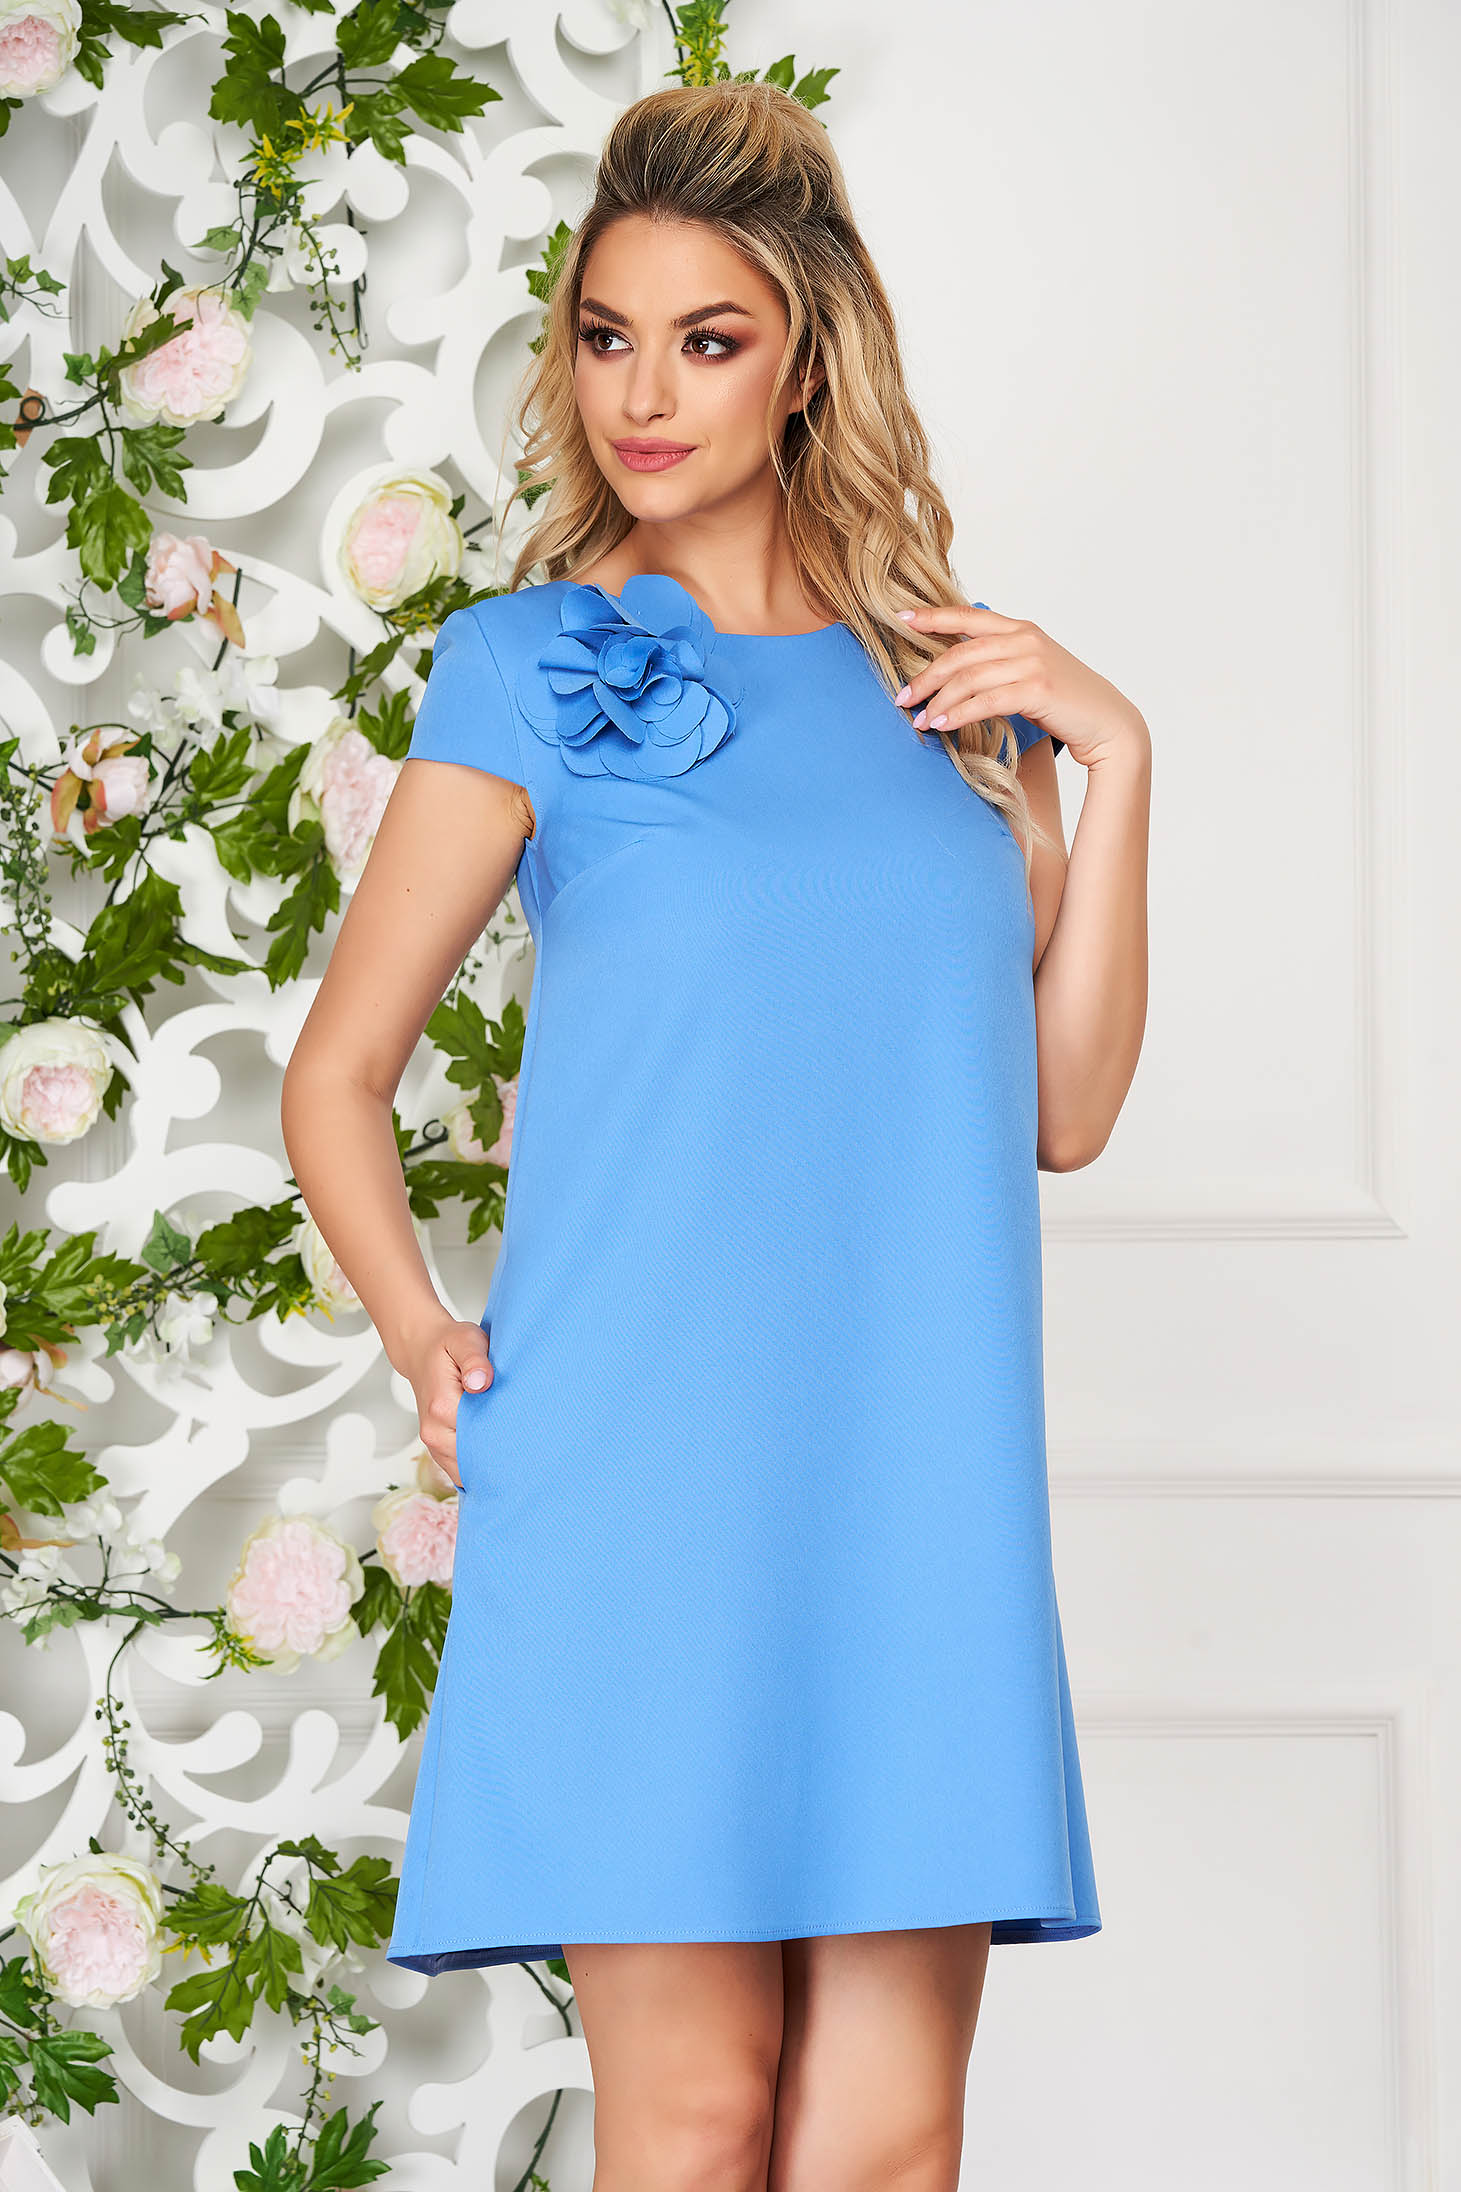 StarShinerS lightblue short cut daily flared dress cloth from elastic fabric with pockets